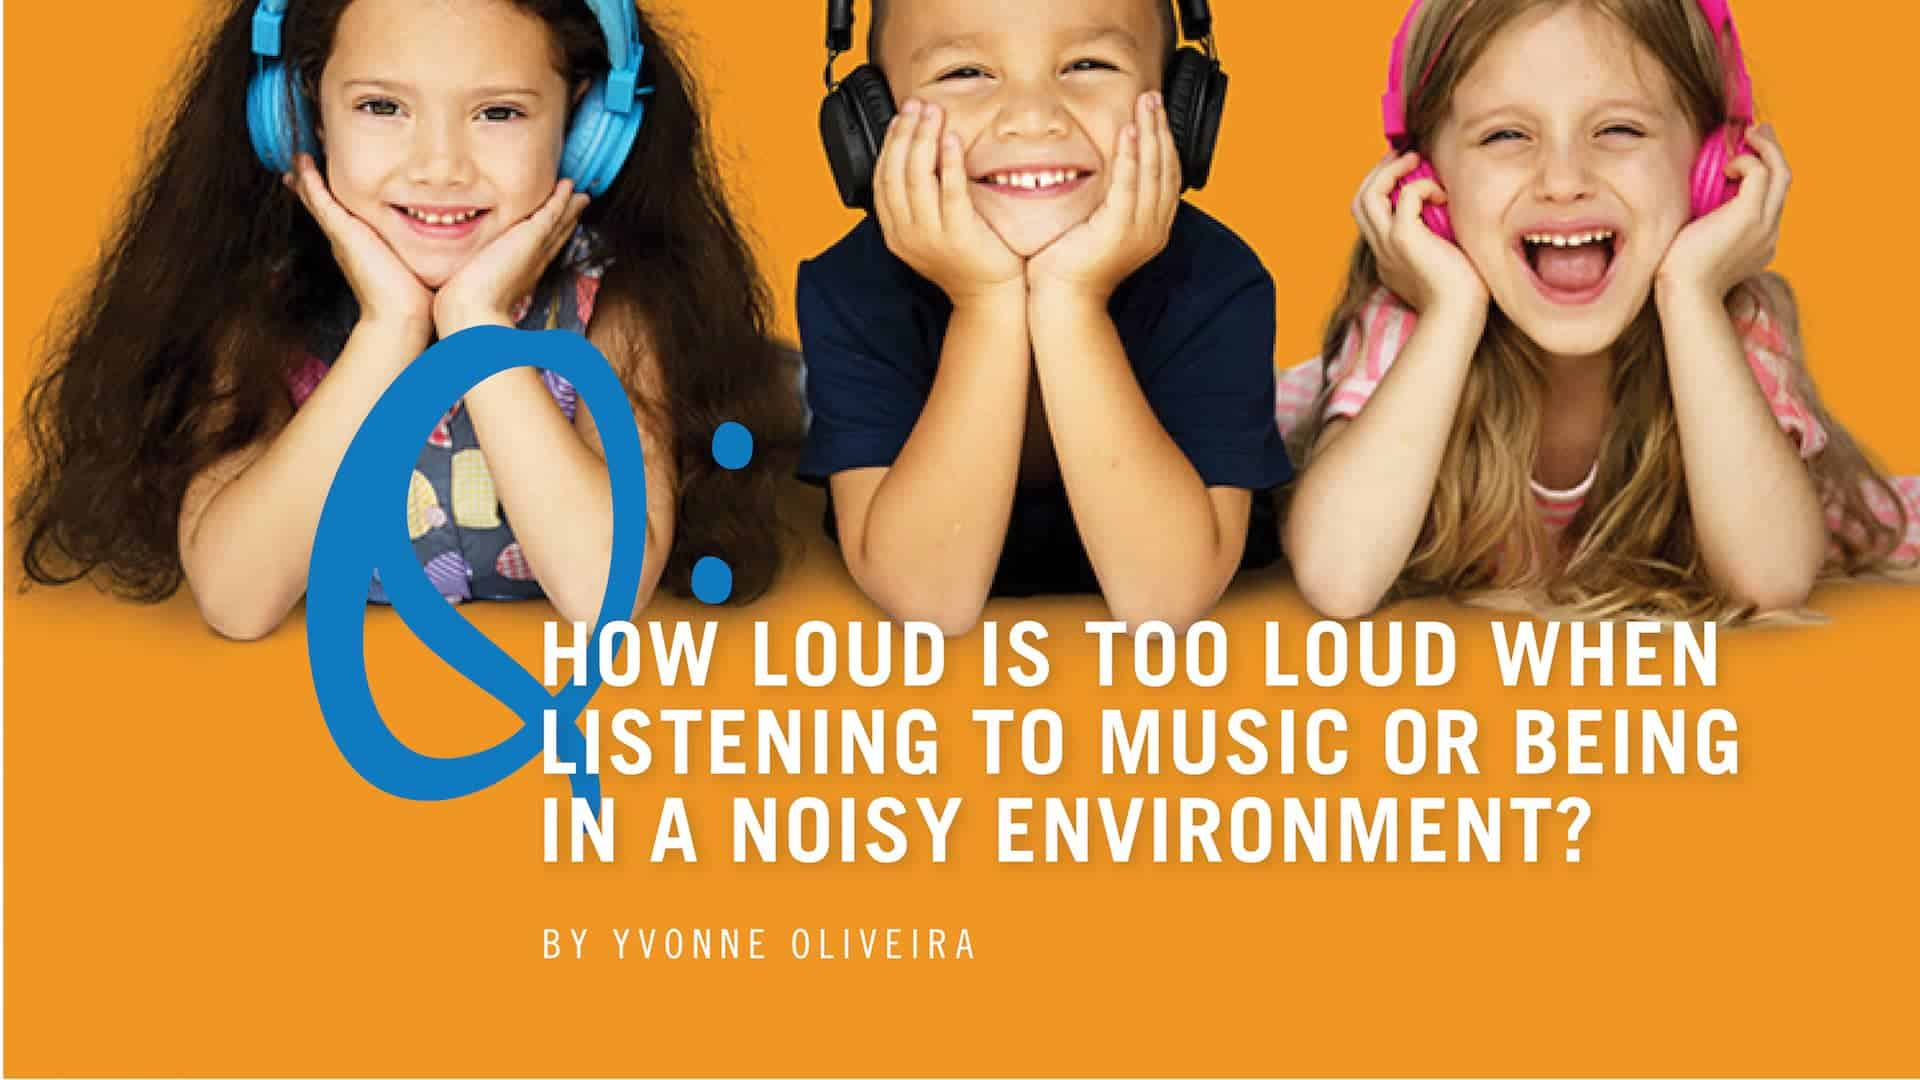 How loud is too loud when listening to music or being in a noisy environment?